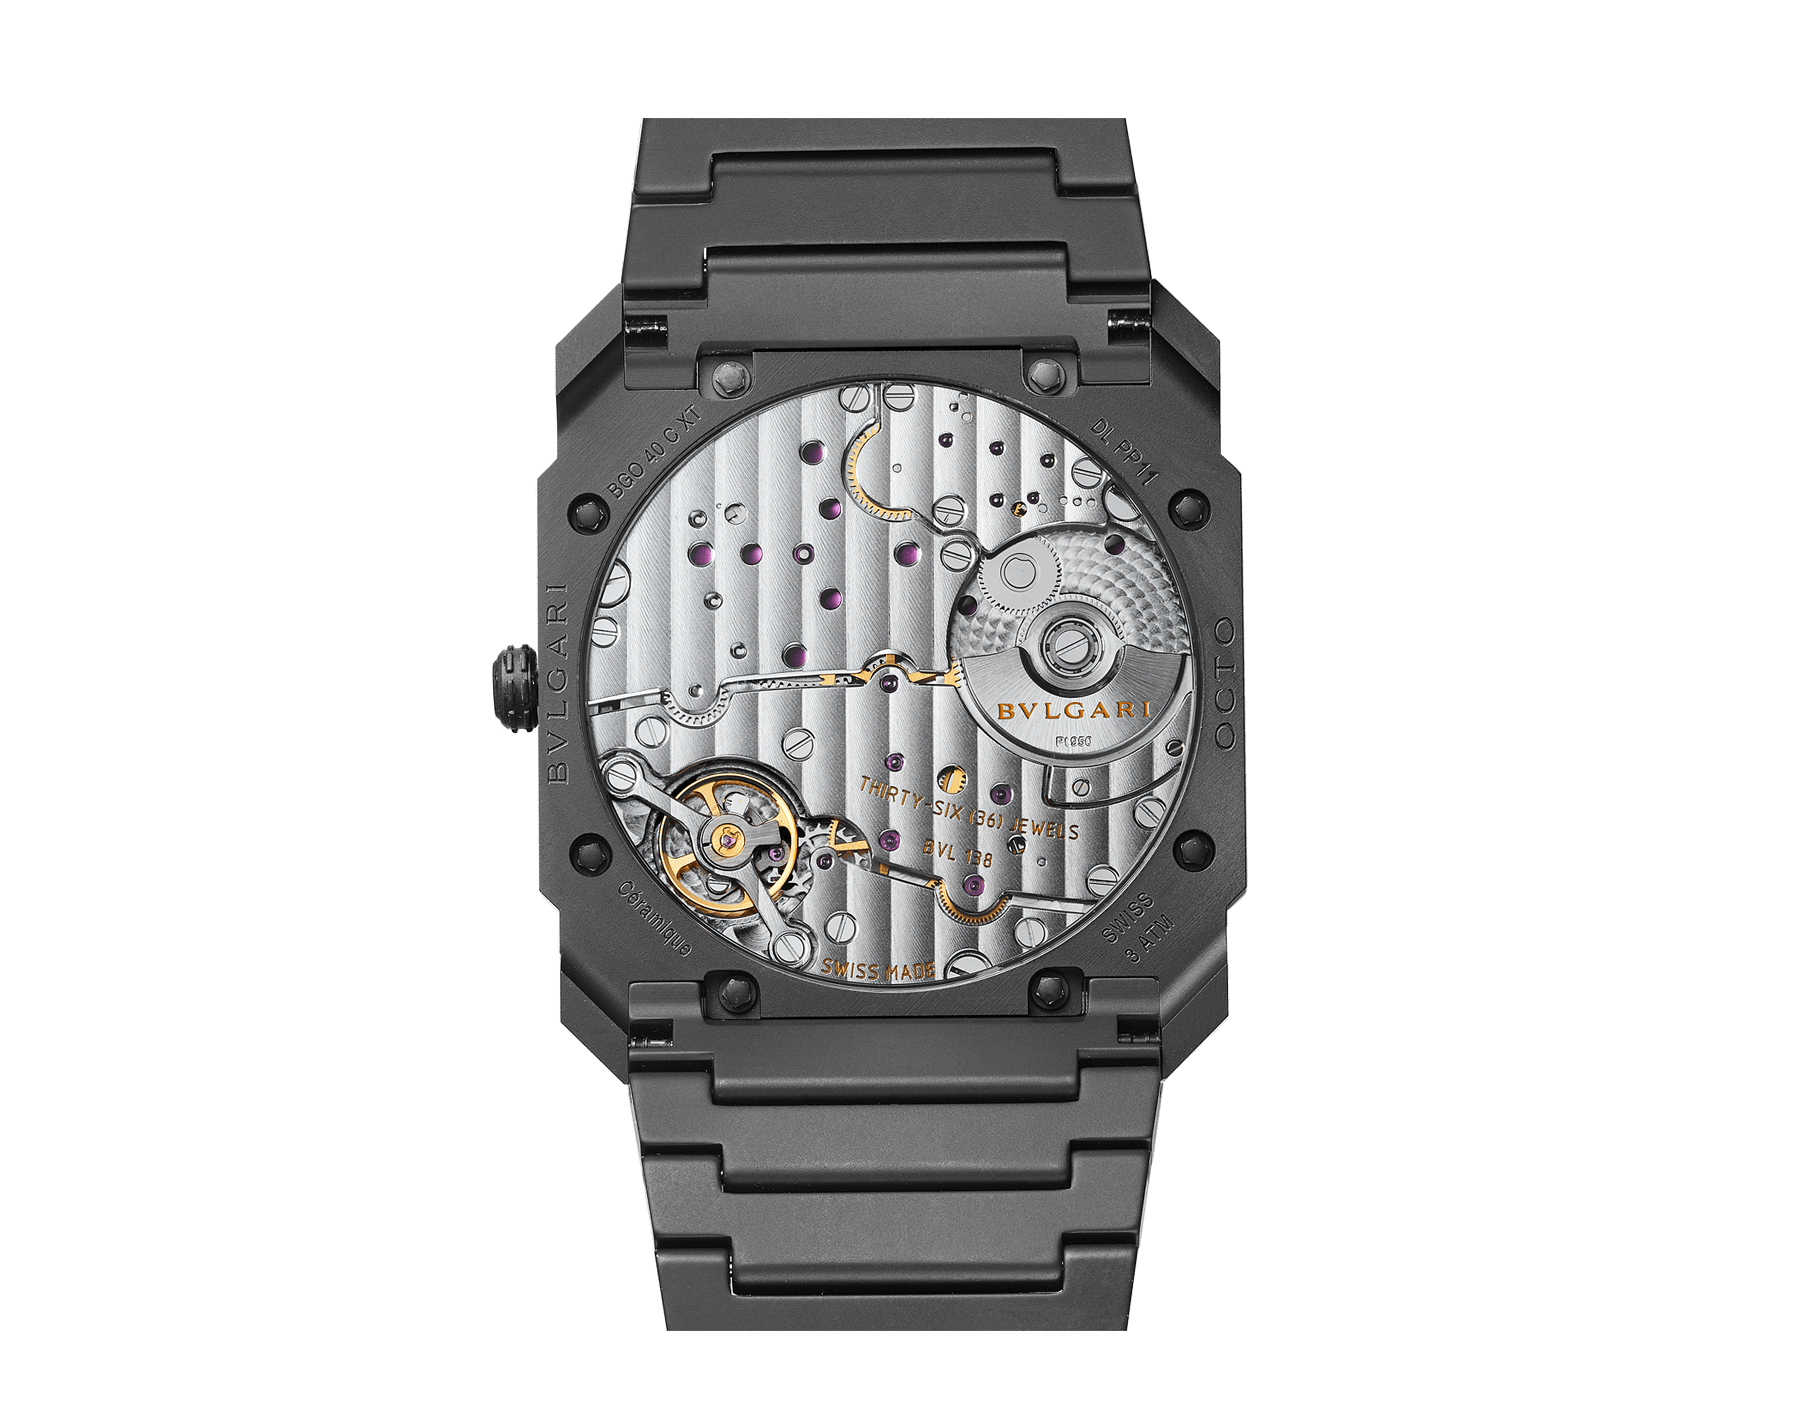 Octo Finissimo Automatic watch in black sandblasted ceramic with extra-thin mechanical manufacture movement, automatic winding with platinum microrotor, small seconds and transparent case back. Water-resistant up to 30 metres 103077 image 3